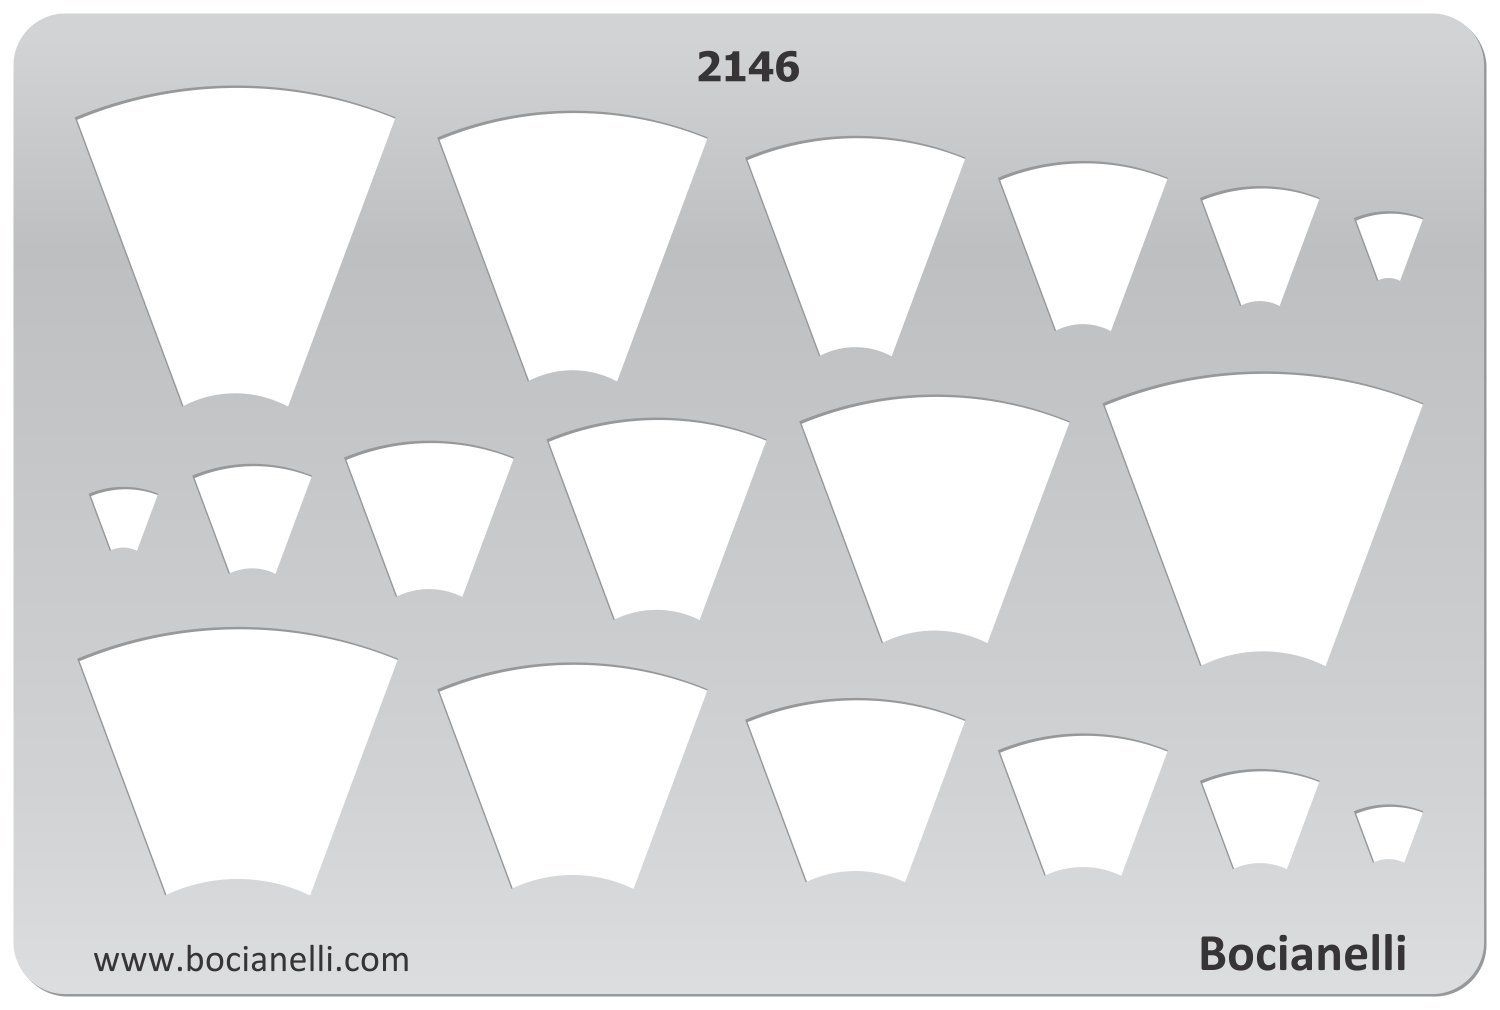 Pendant shapes 2146 jewelry making design template drawing amazon plastic stencil template for graphical design drawing drafting metal clay jewellery jewelry making pendants mozeypictures Gallery